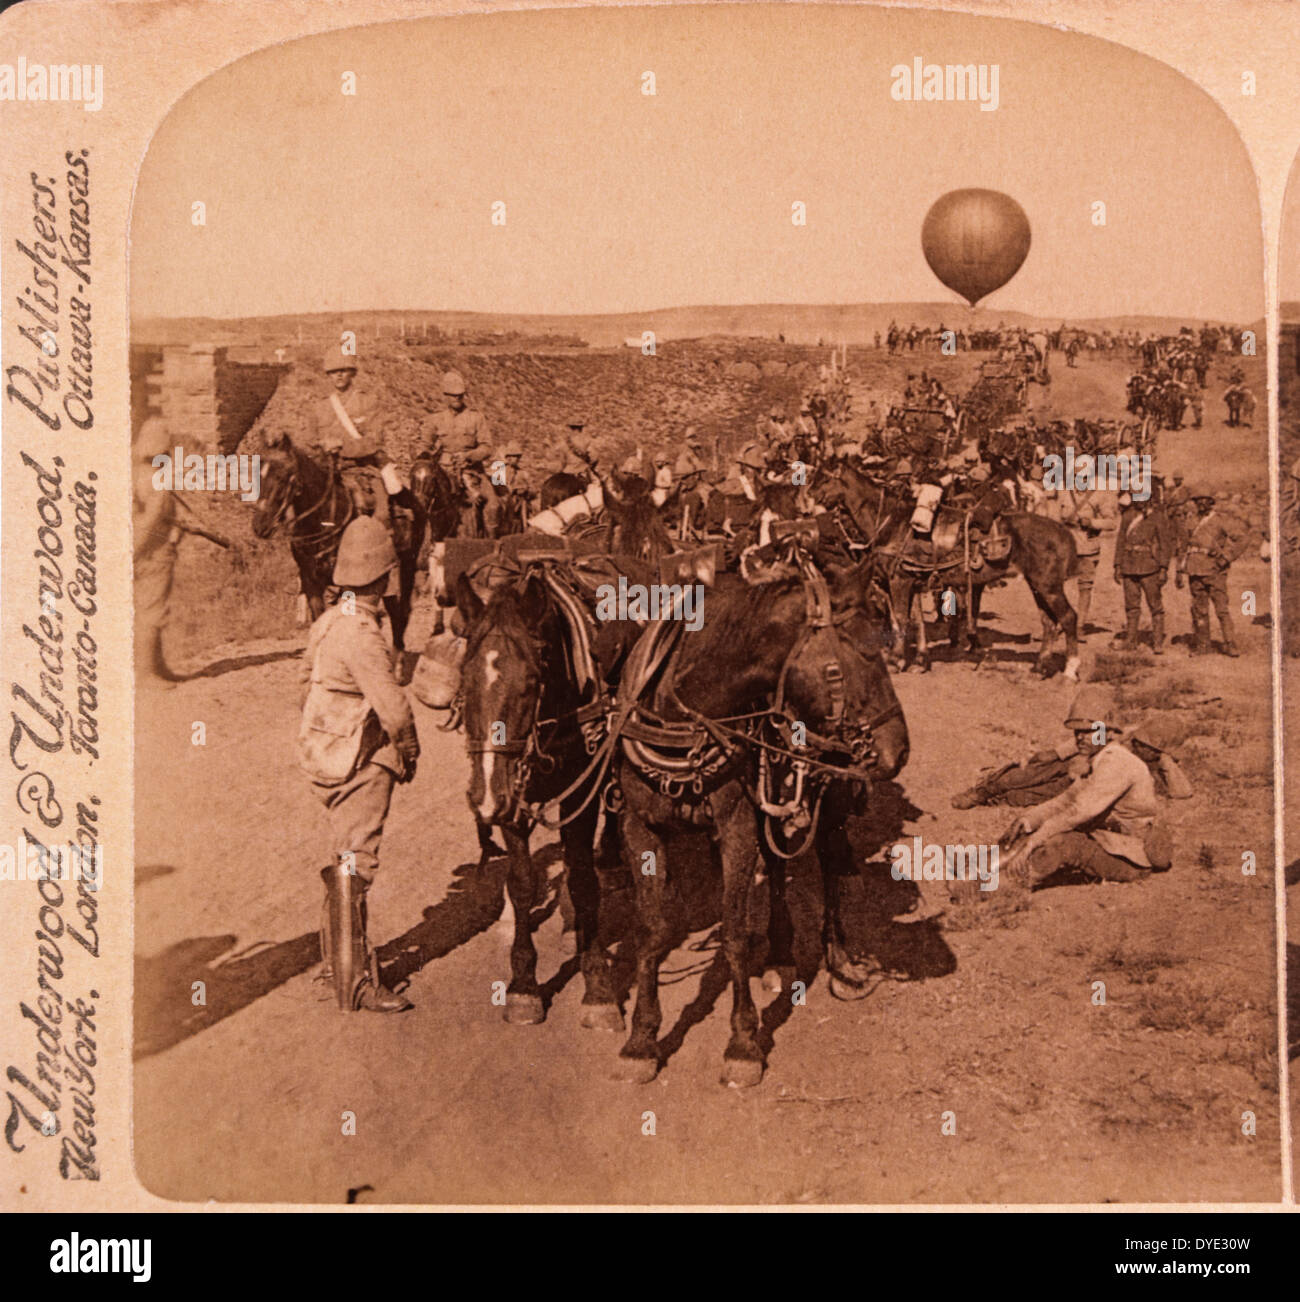 8th Battery and Balloon Corps of Lord Roberts' British Army Advancing Towards Johannesburg, South Africa, Second Boer War, 1901 - Stock Image